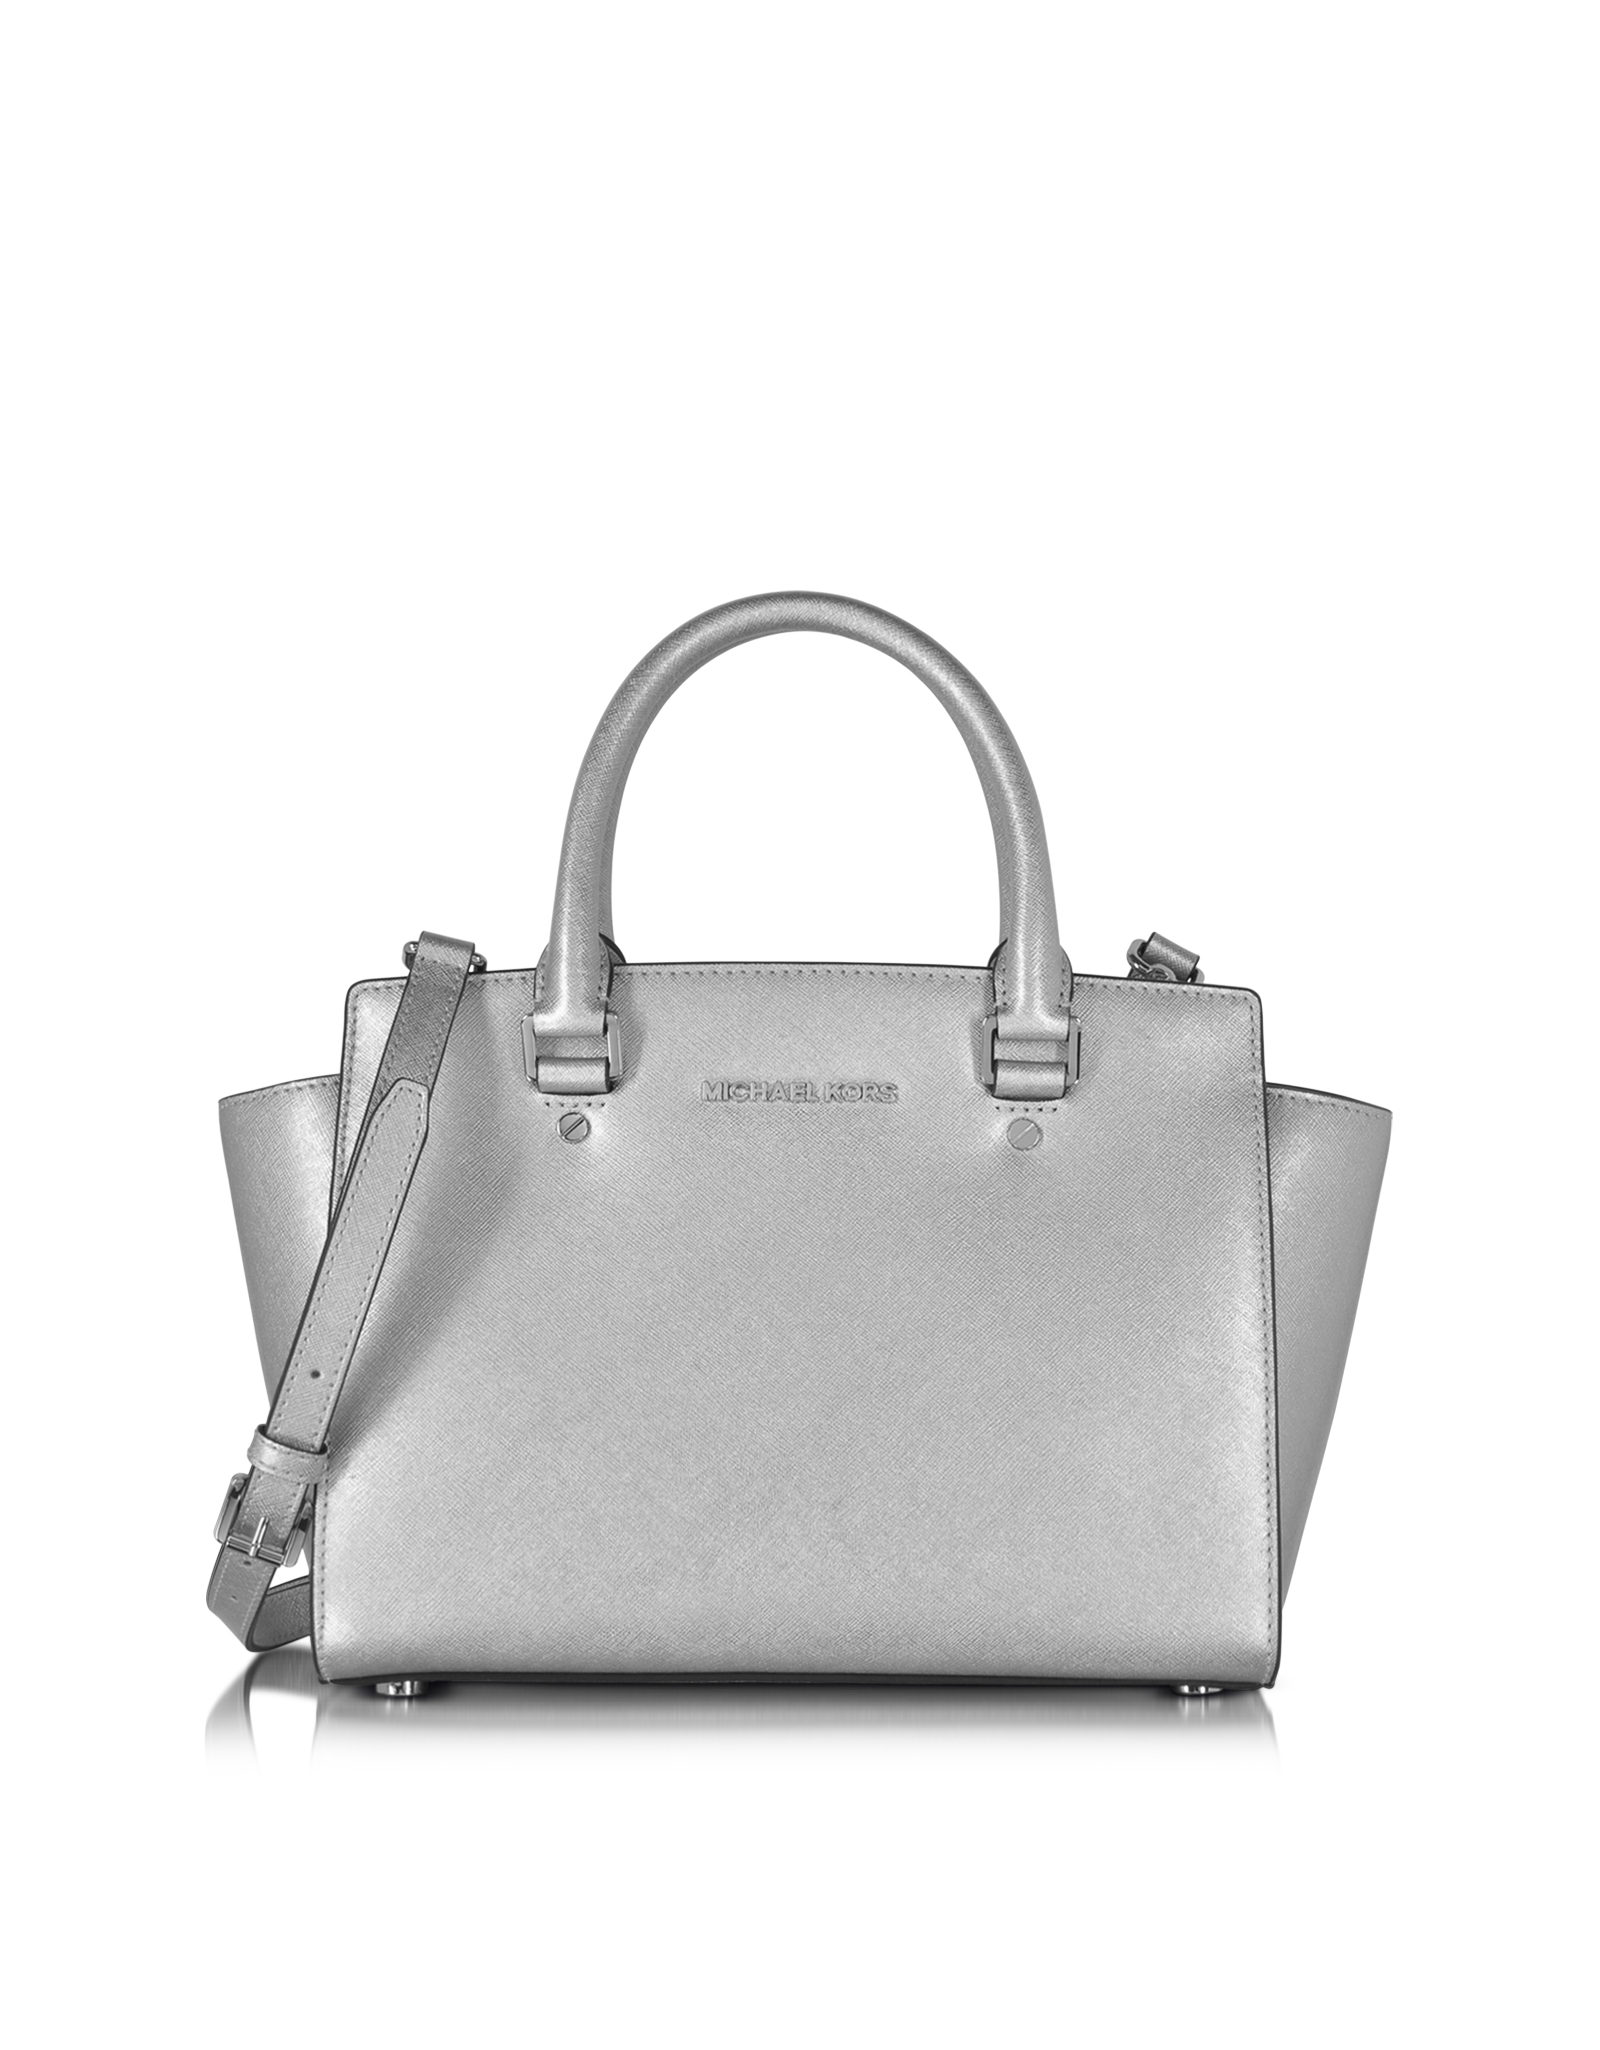 Michael kors Selma Saffiano Leather Medium Satchel Bag in Metallic ...